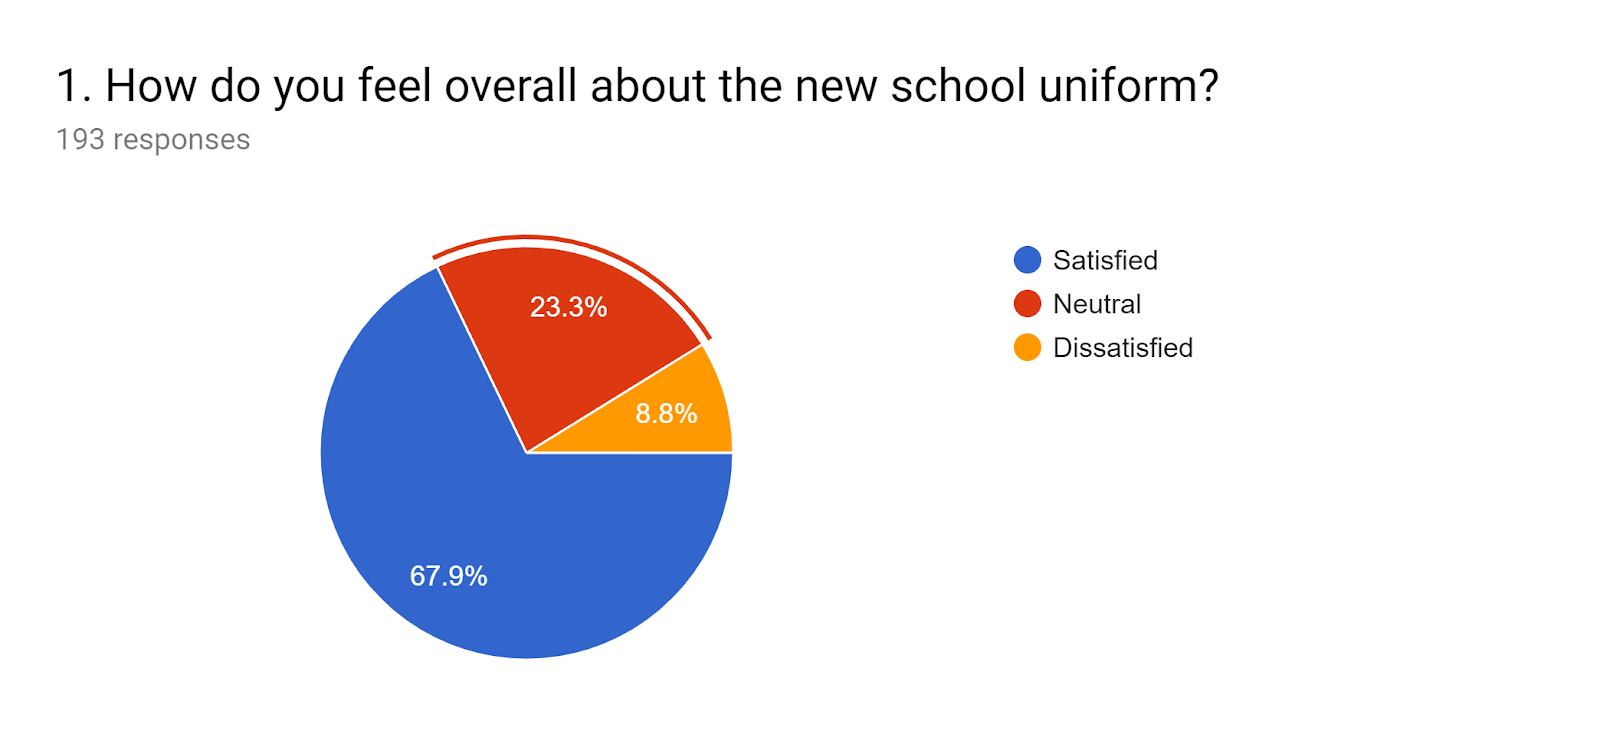 Forms response chart. Question title: 1. How do you feel overall about the new school uniform?. Number of responses: 193 responses.